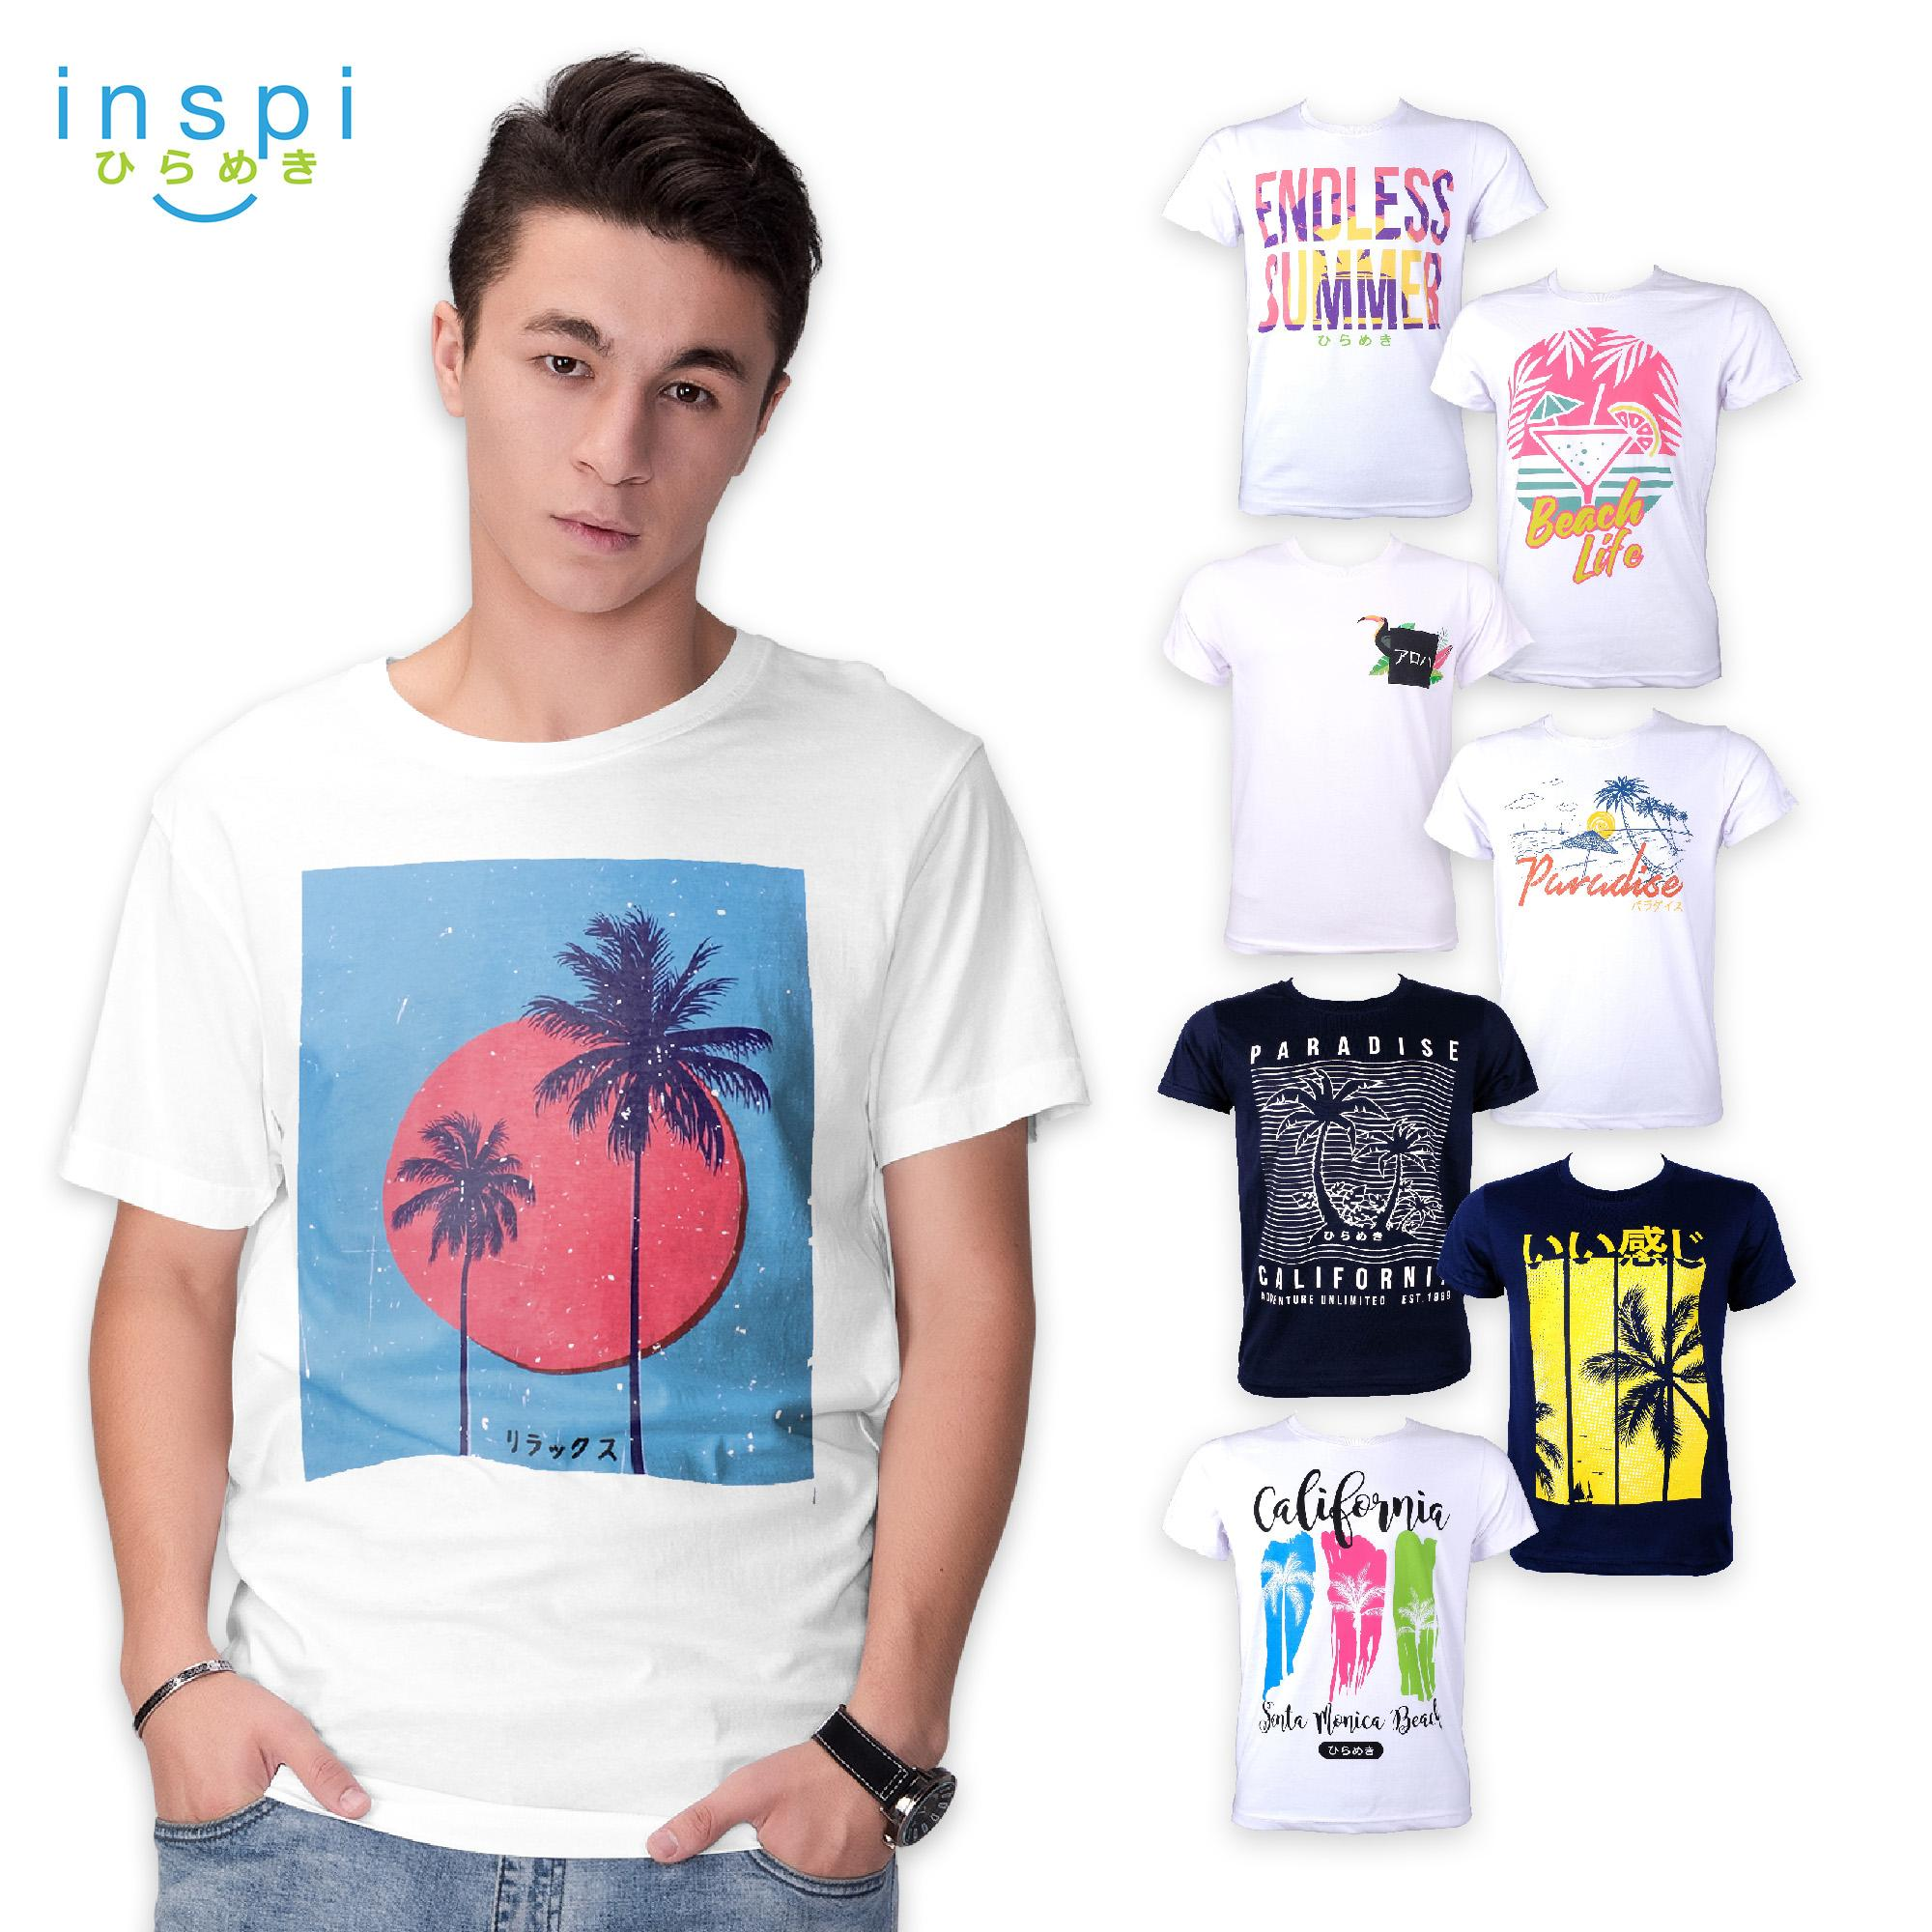 INSPI Tees Summer Collection tshirt printed graphic tee Mens t shirt shirts for men tshirts sale